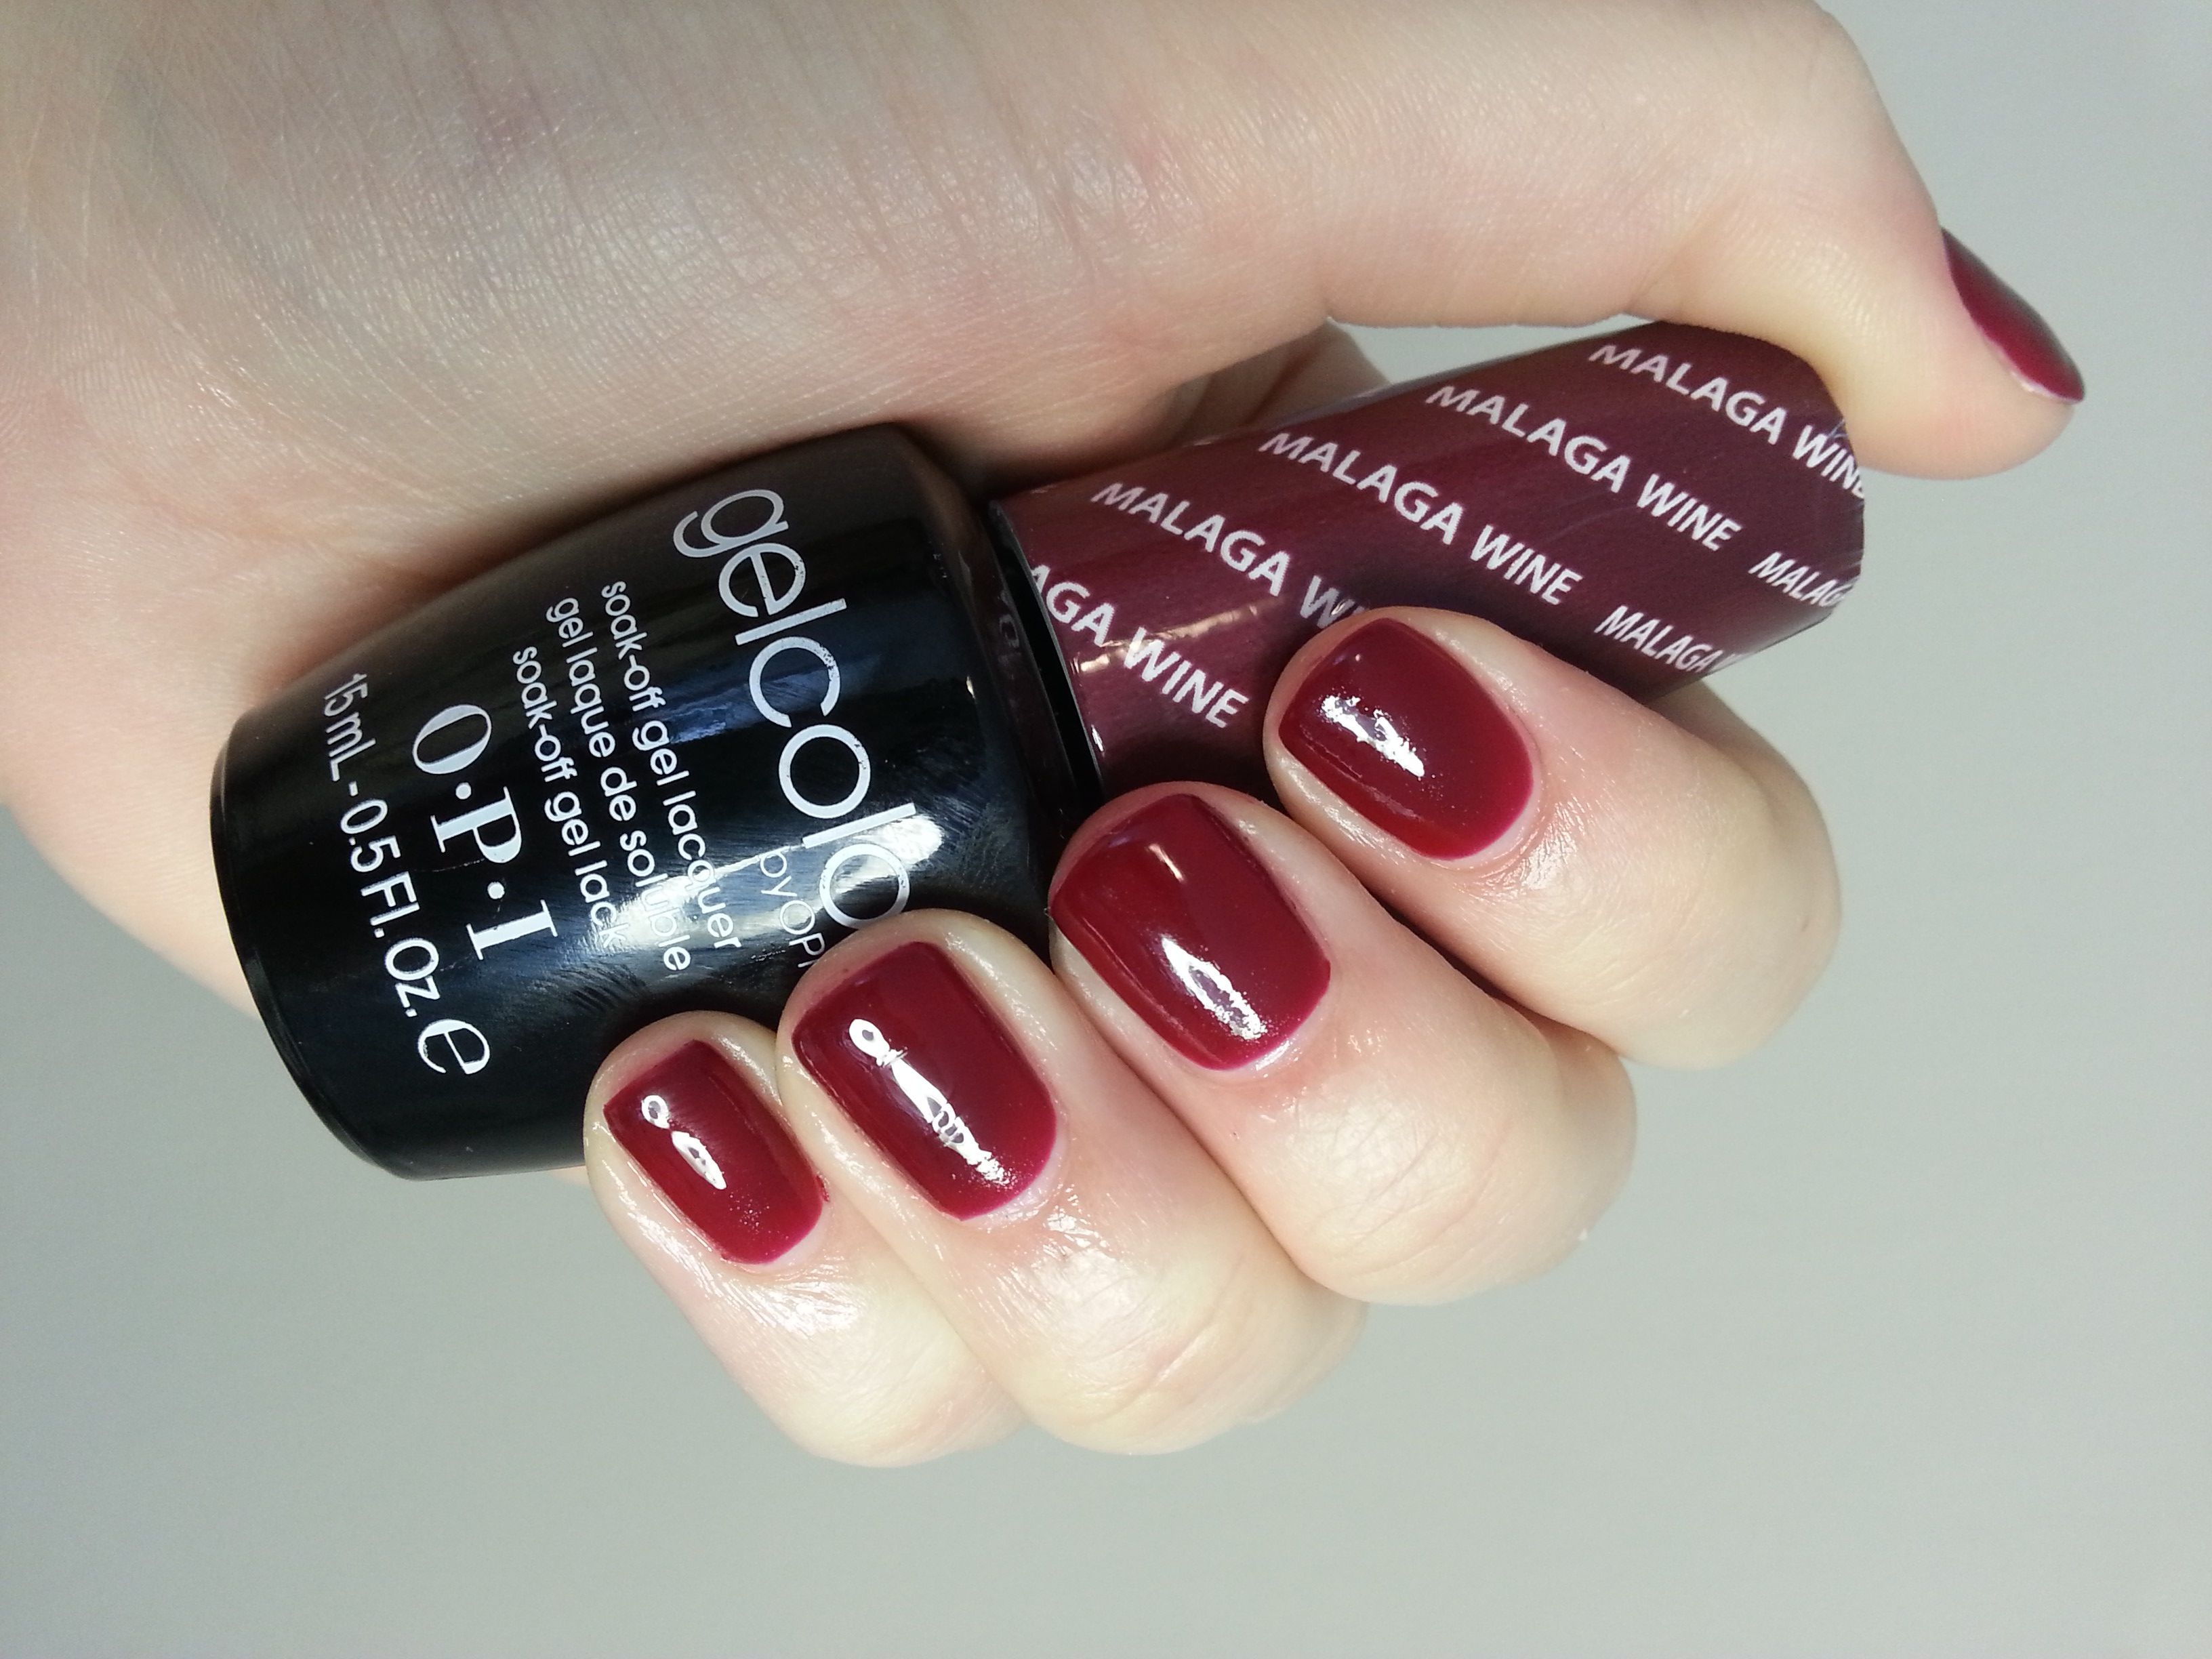 opi gel color malaga wine - Google Search | Health and Beauty ...